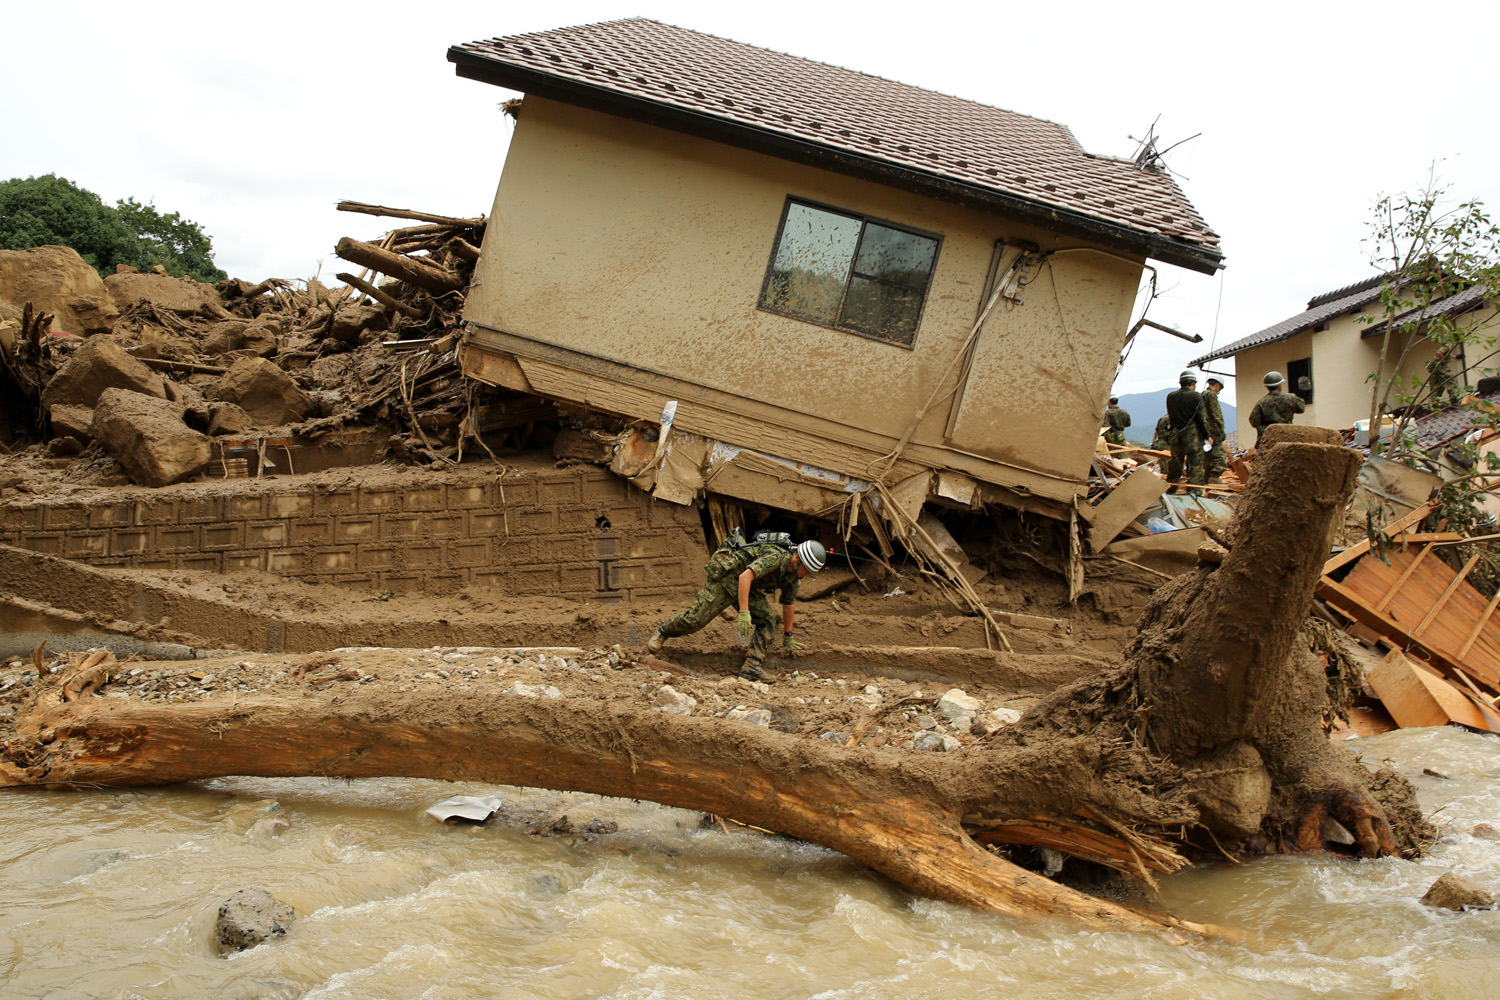 Aug. 20, 2014. Members of Ground Self-Defense continue the search for missing people among the debris of houses destroyed by a landslide caused by torrential rain at the site of a landslide in a residential area on in Hiroshima, Japan.